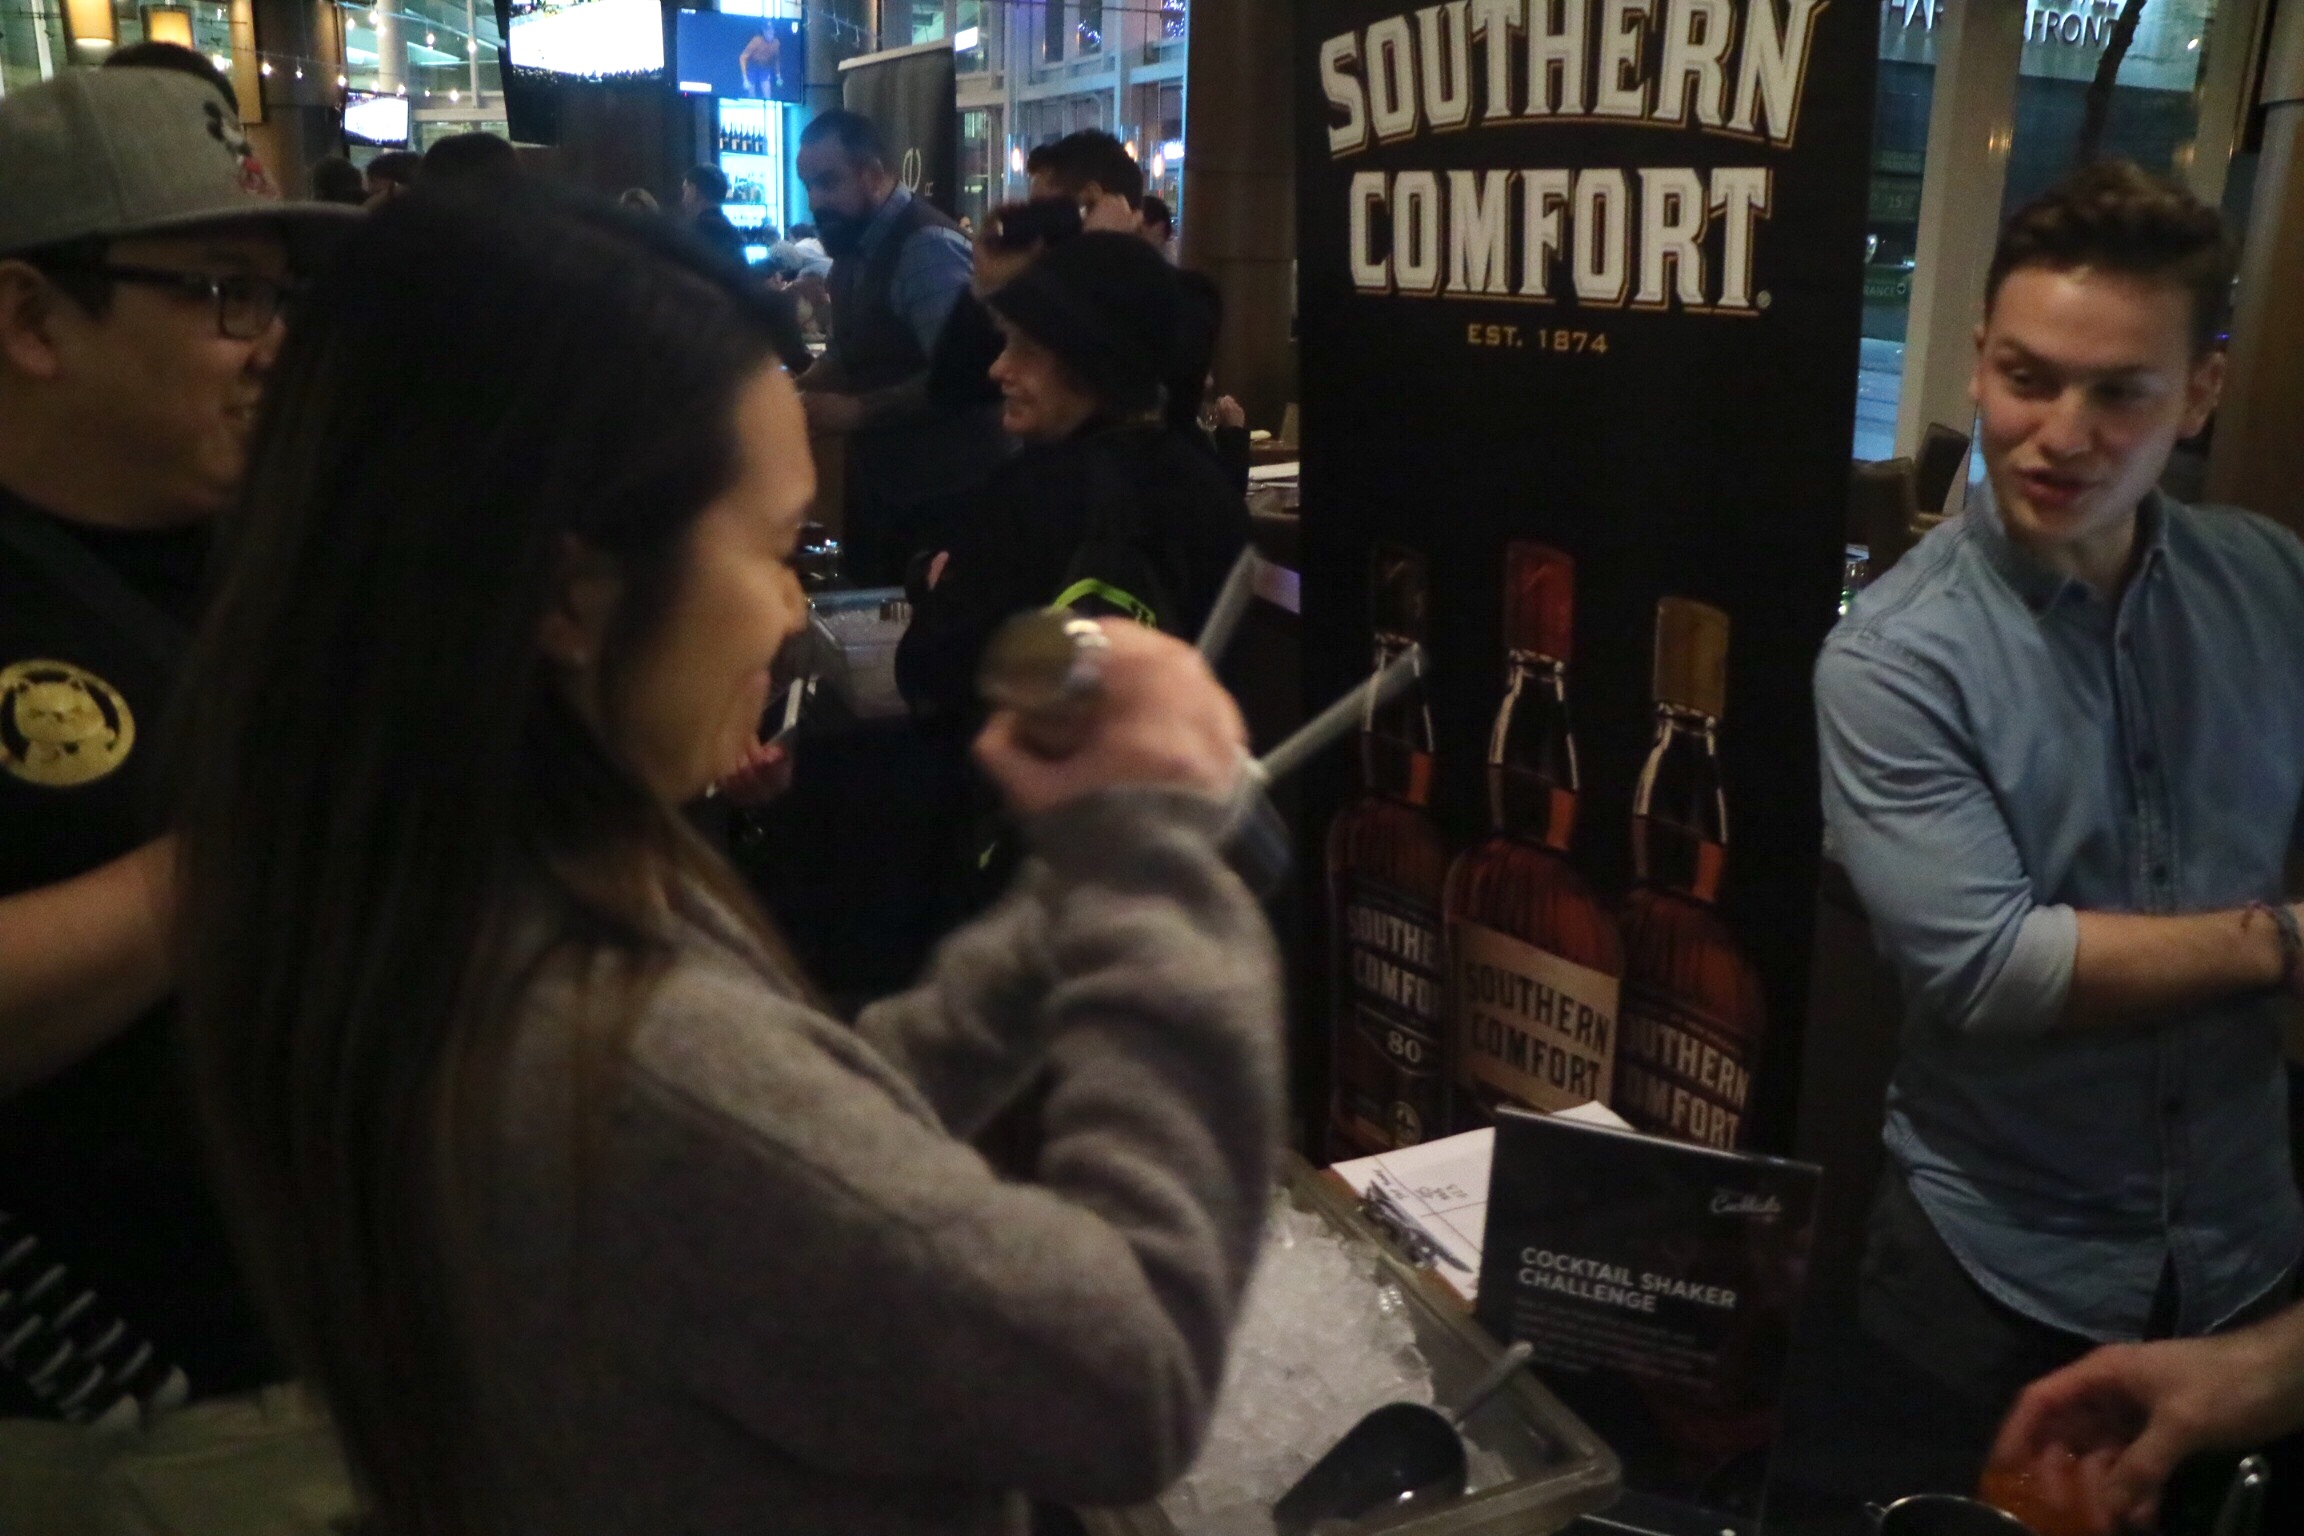 southern comfort shaker challenge